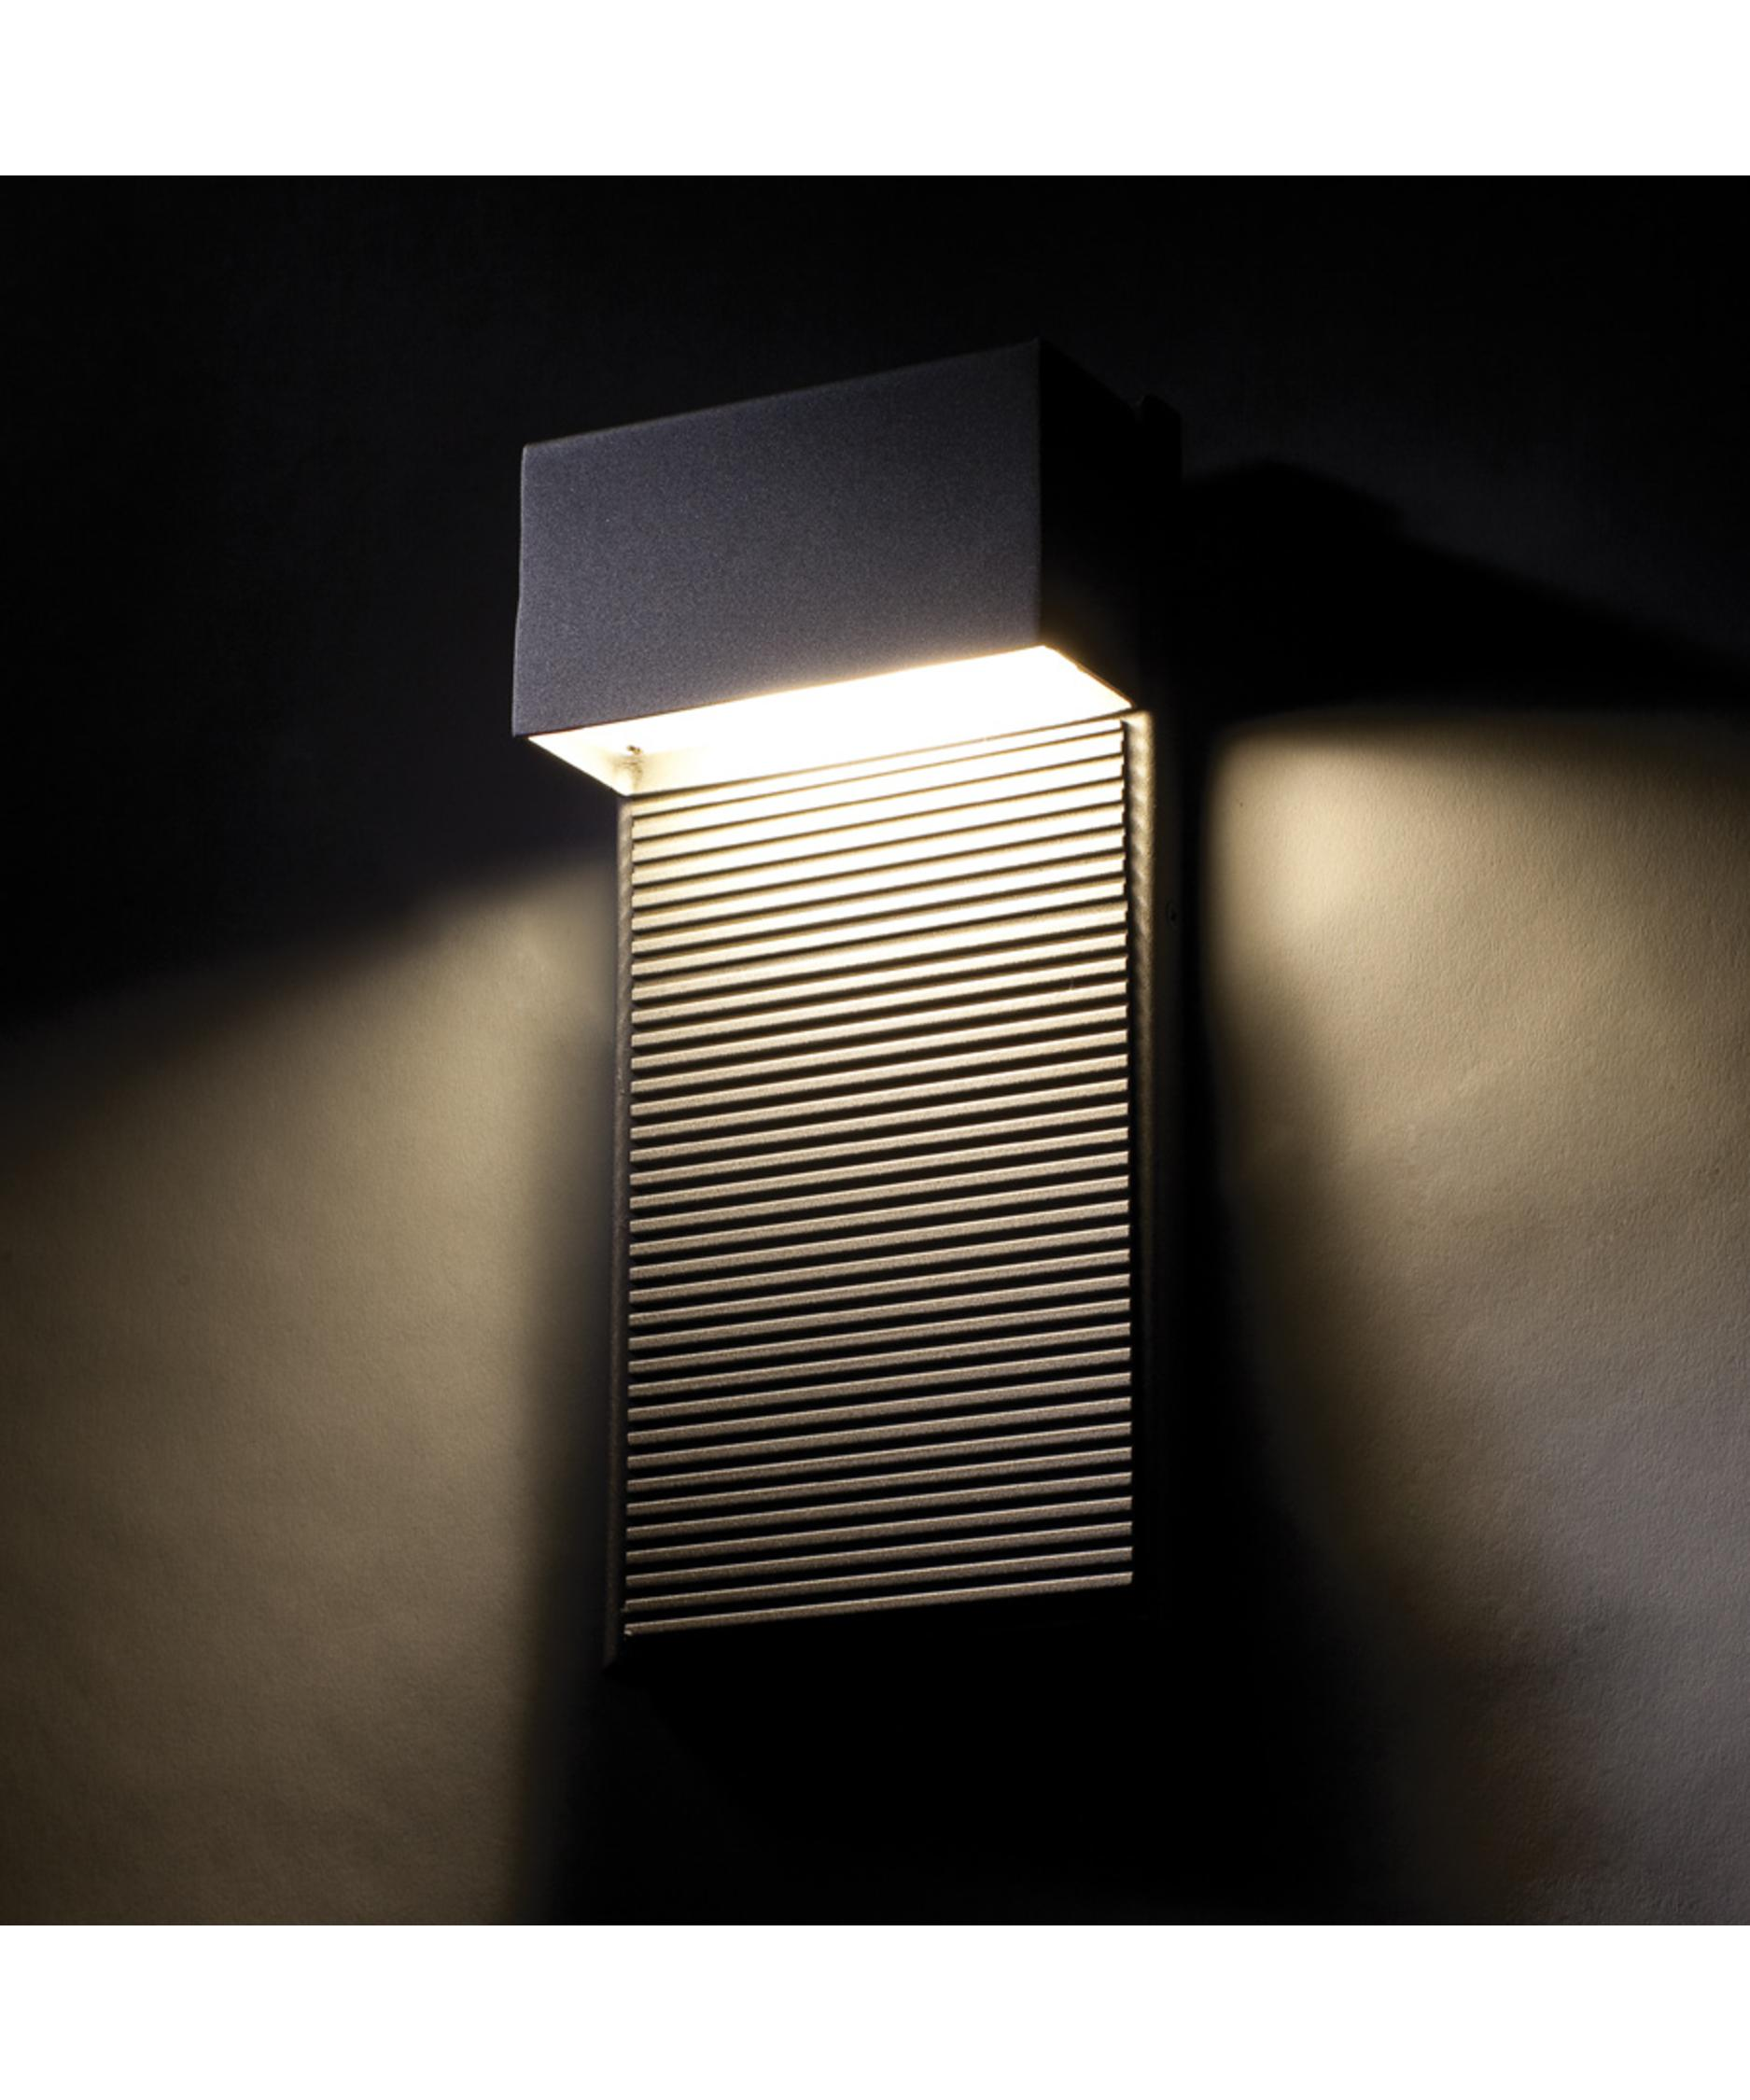 Black Outdoor Wall Light modern forms ws-w2308 hiline 5 inch wide 2 light outdoor wall